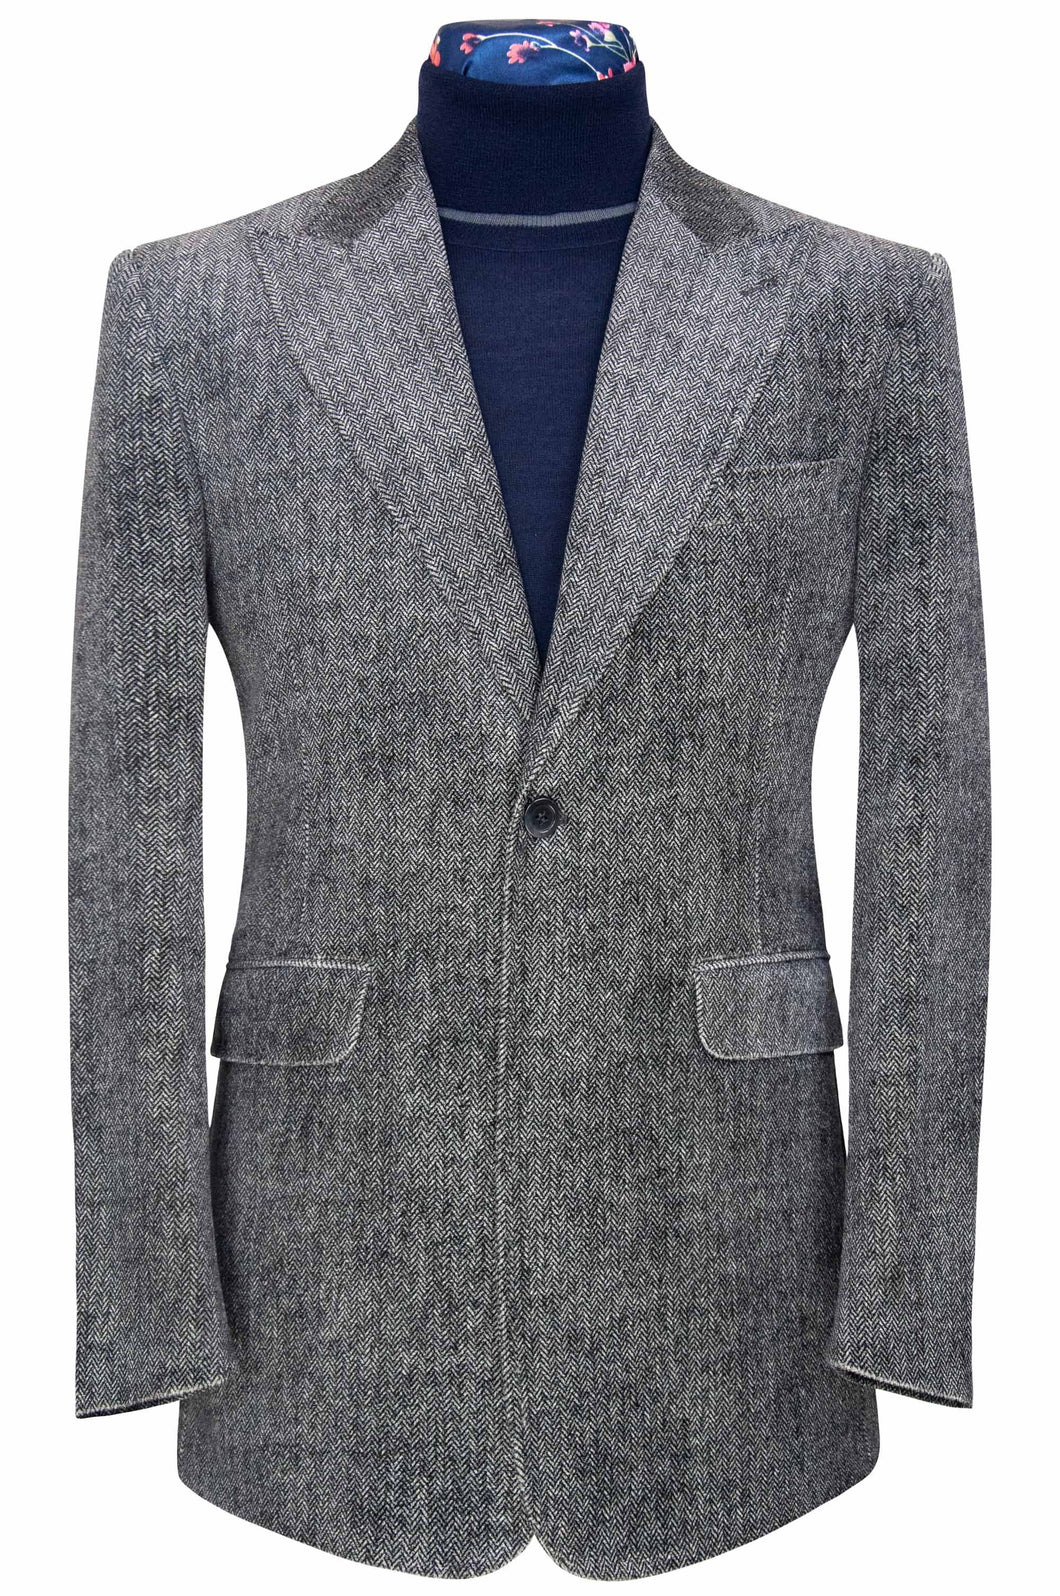 William Hunt Savile Row Grey melange herringbone peak lapel velvet jacket